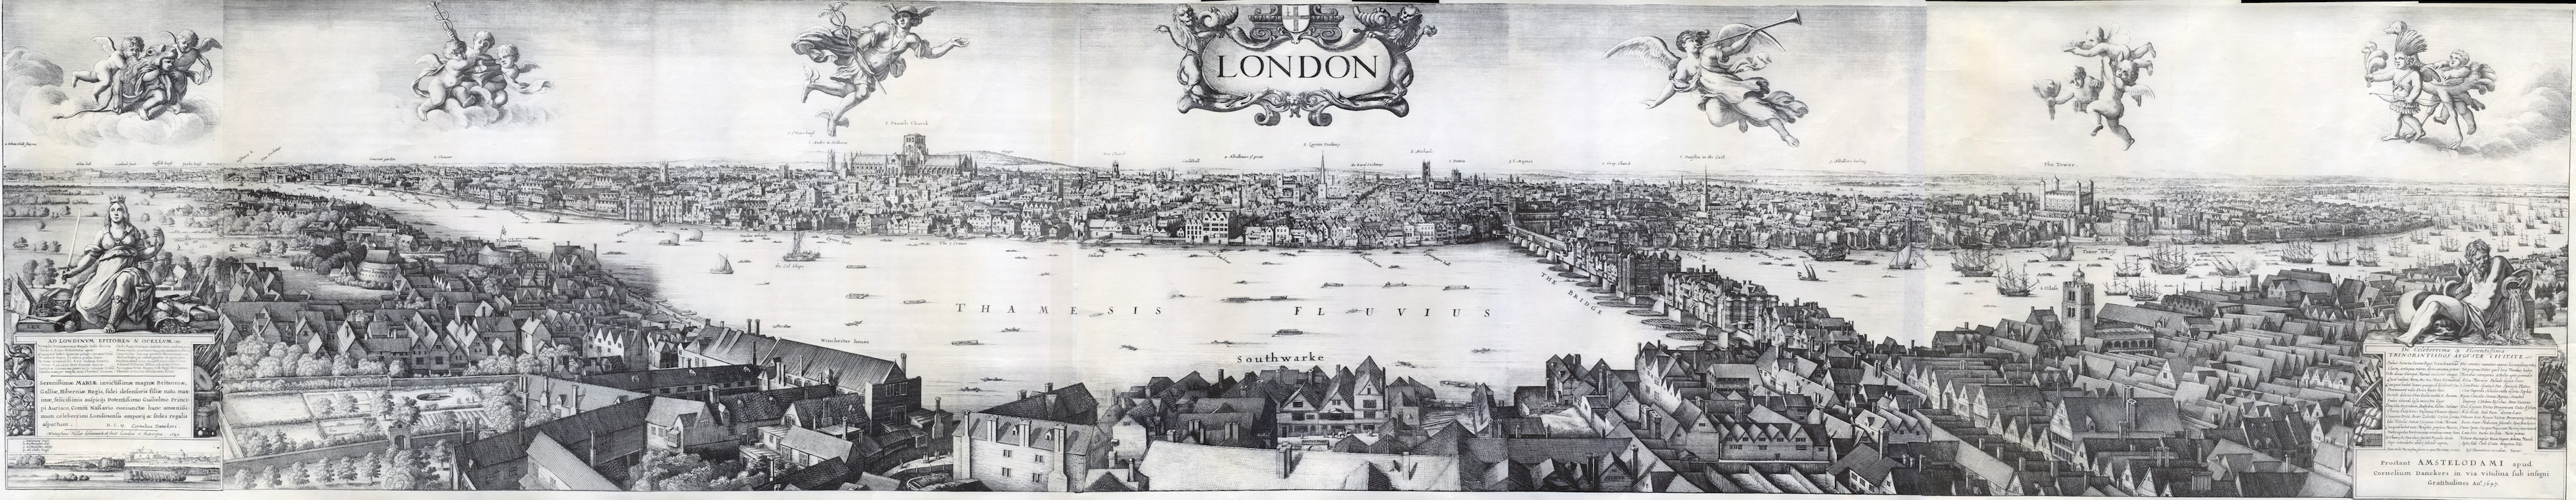 Long View of London from Bankside, a panoramic etching made by Wenceslas Hollar in Antwerp, 1647. The image is six plates that join together, each consisting of drawings made from a single viewpoint, the tower of St. Saviour in Southwark (now Southwark Cathedral)